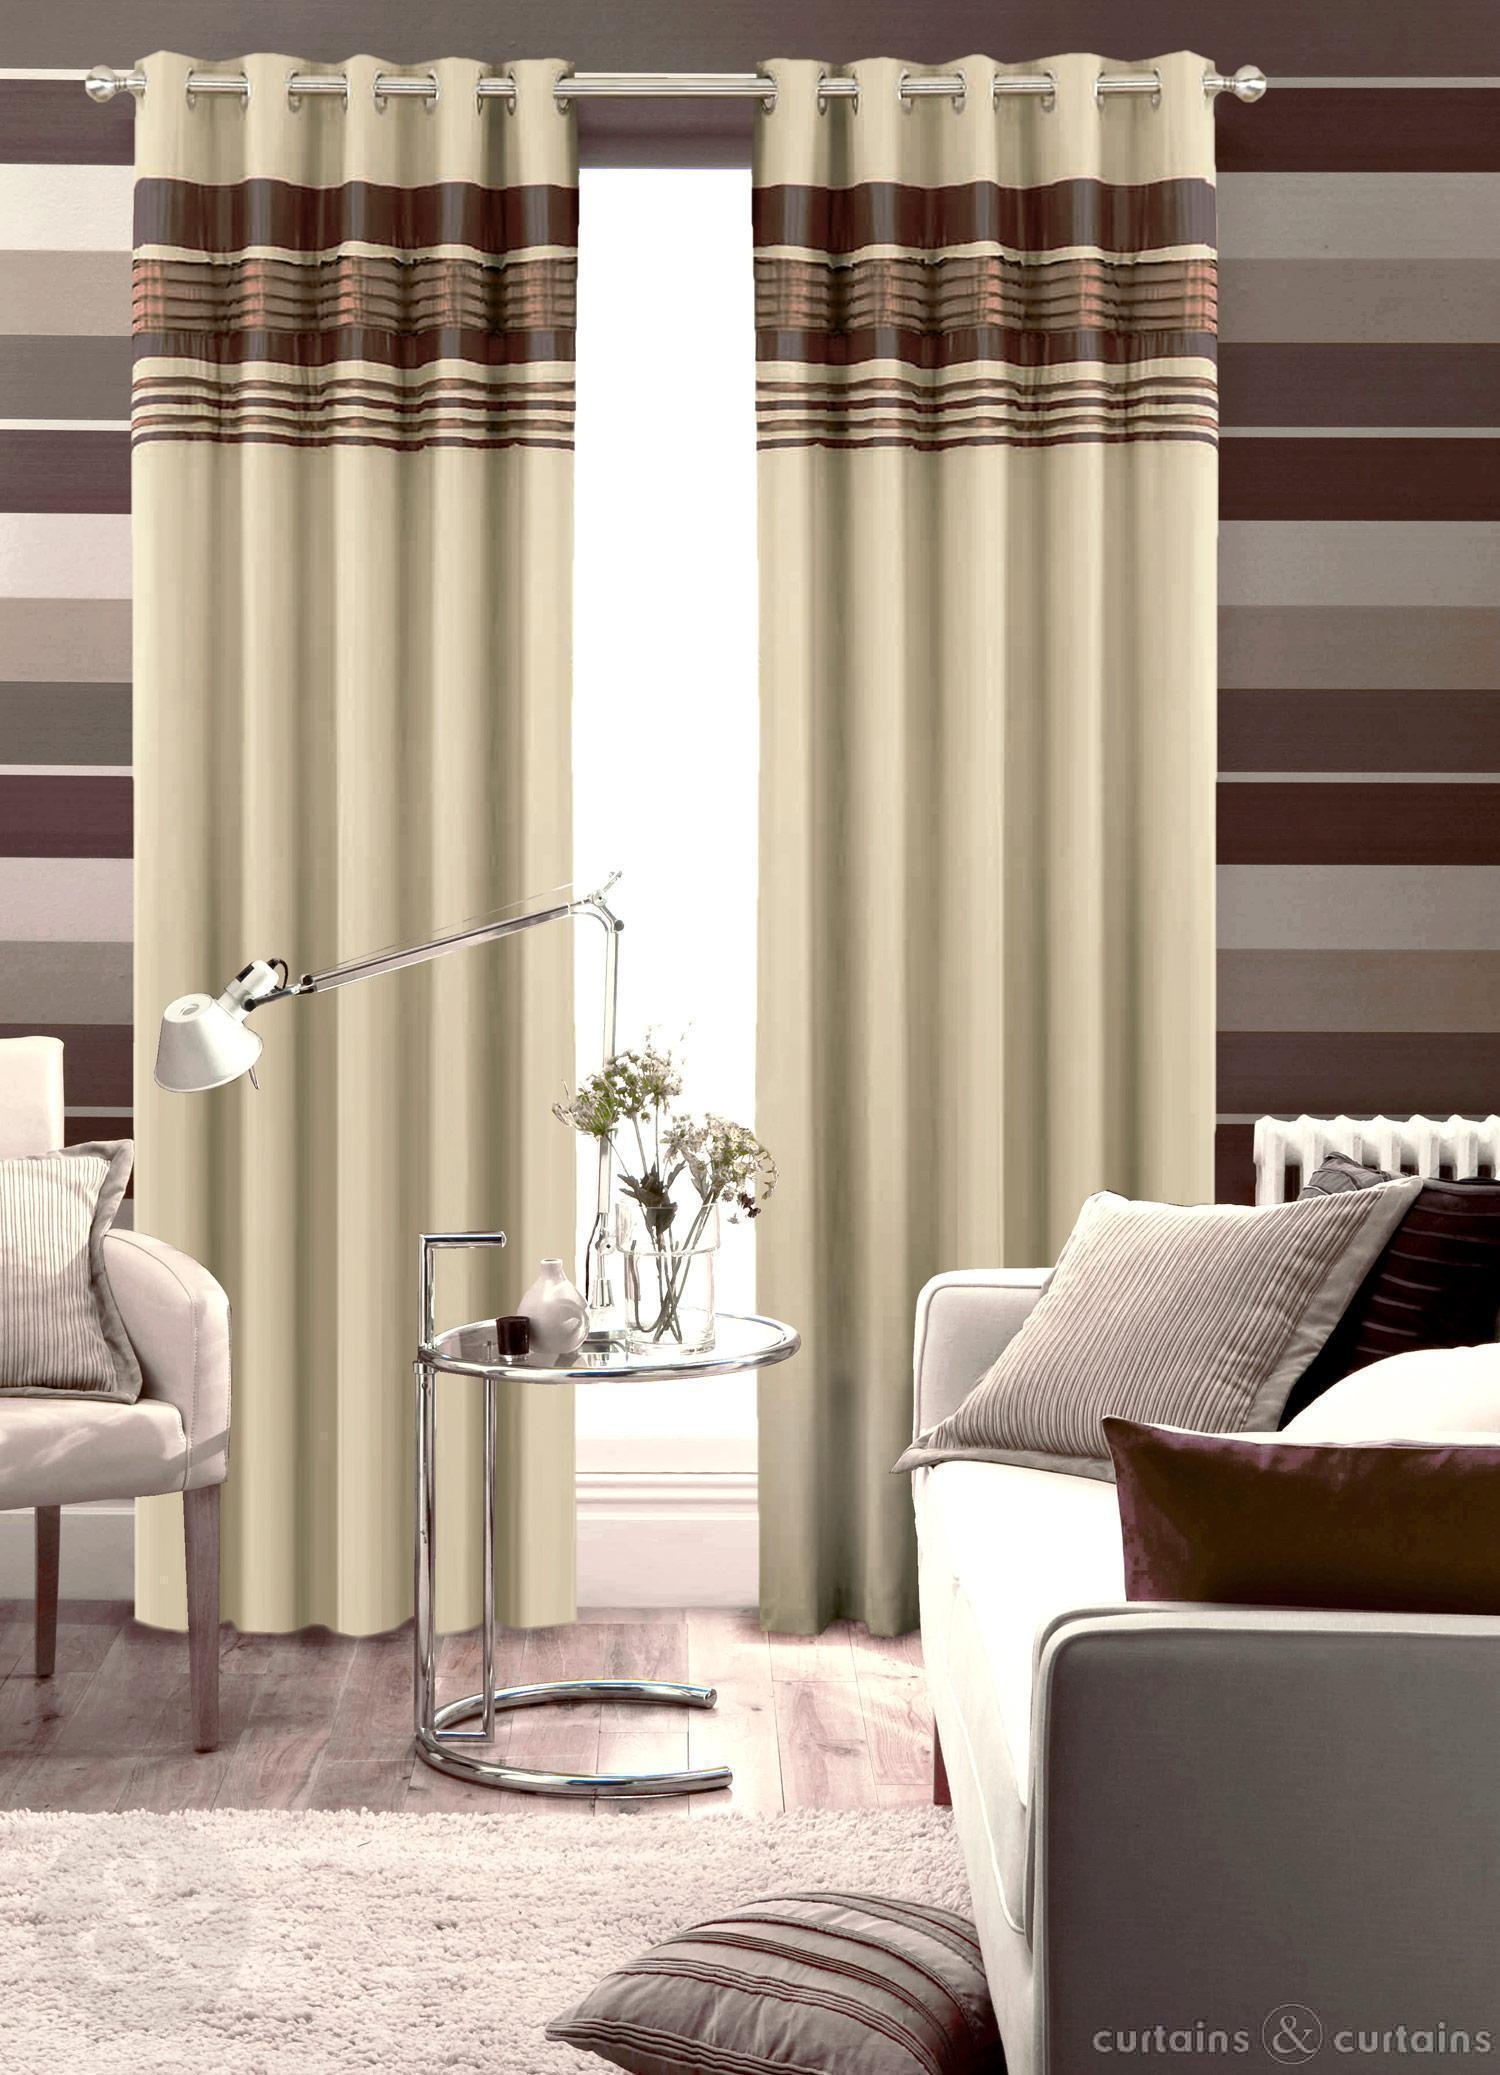 Chocolate Brown Next Readymade Eyelet Curtain Curtains And Throughout Cream And Gold Eyelet Curtains (Image 5 of 15)